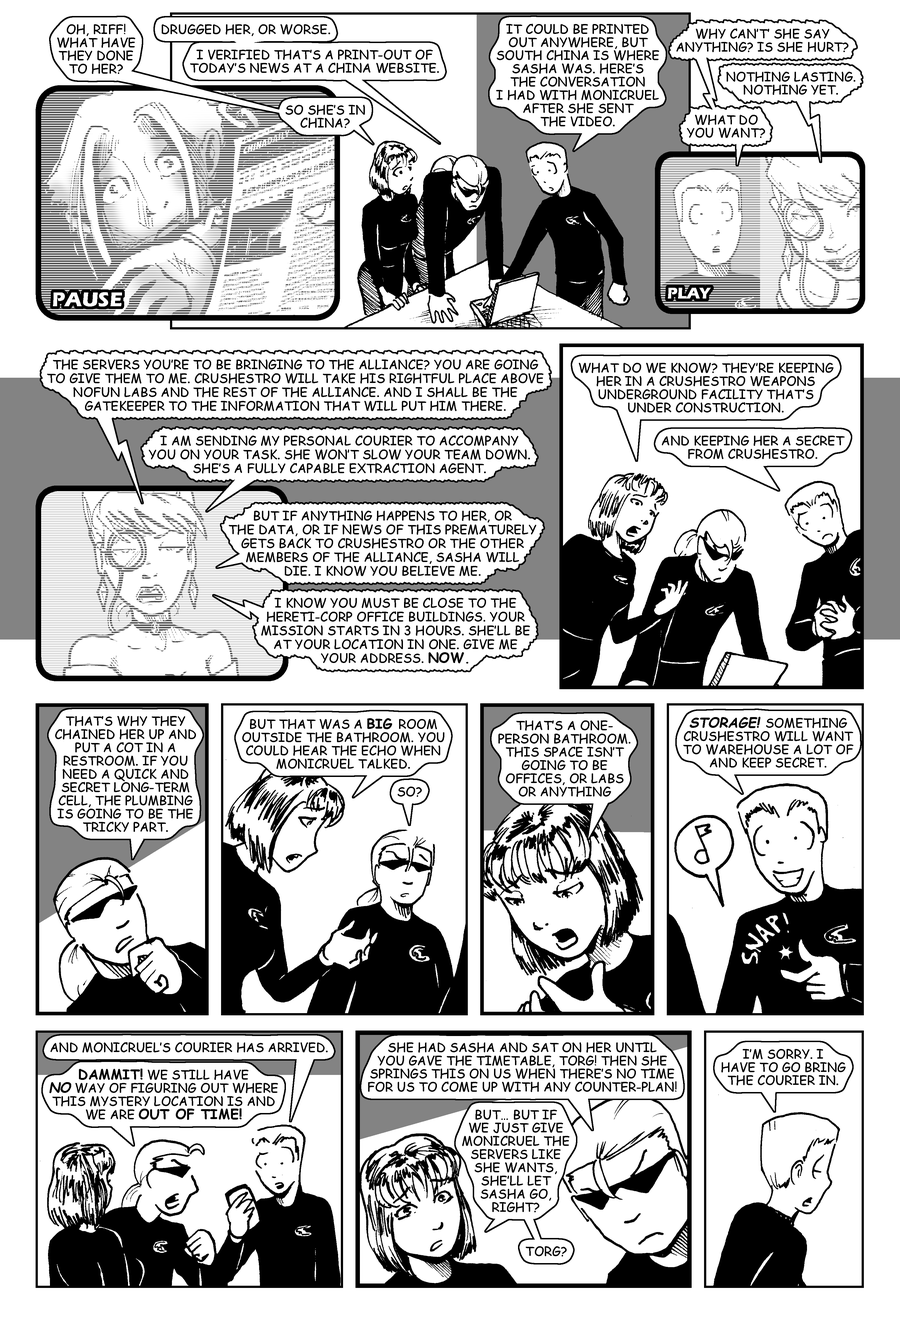 Comic for 05/15/2012